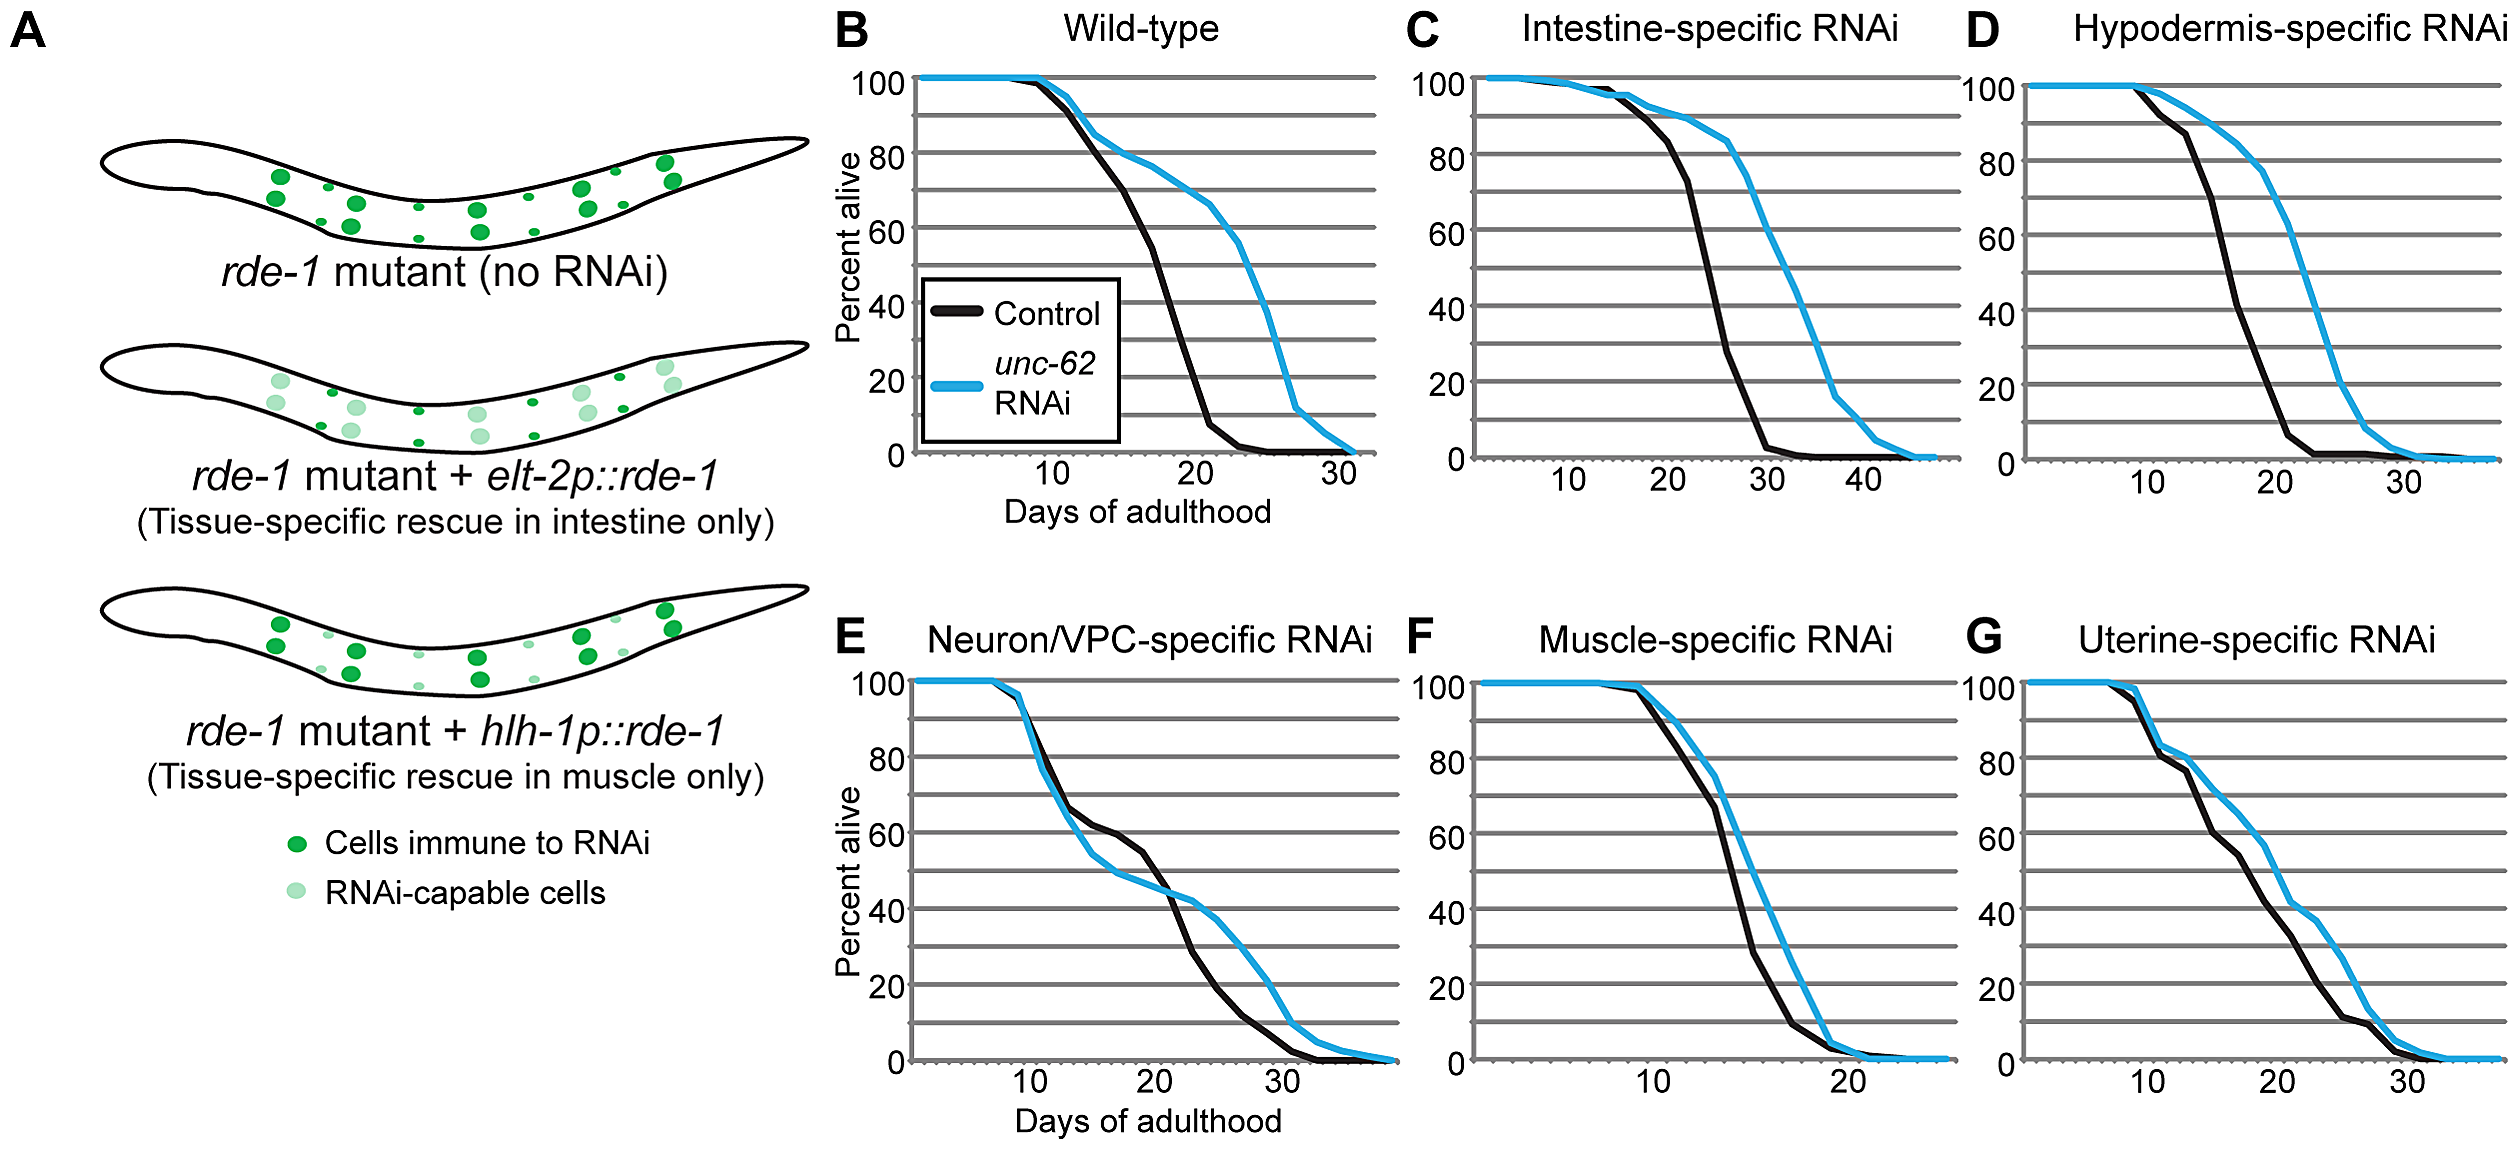 UNC-62 knockdown extends lifespan in intestinal and hypodermal tissues.